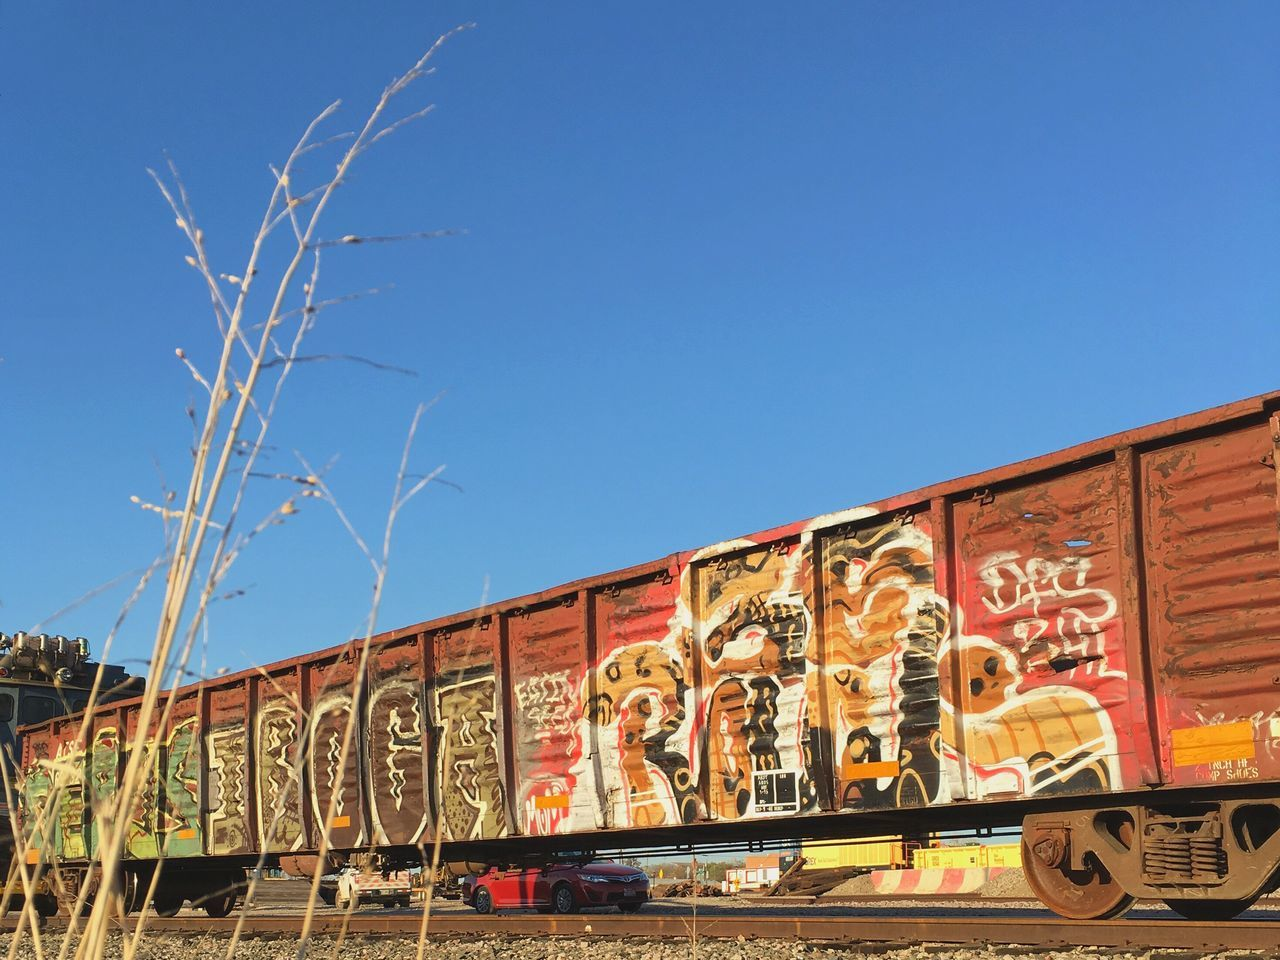 graffiti, text, blue, day, outdoors, architecture, built structure, transportation, clear sky, sunlight, no people, sky, city